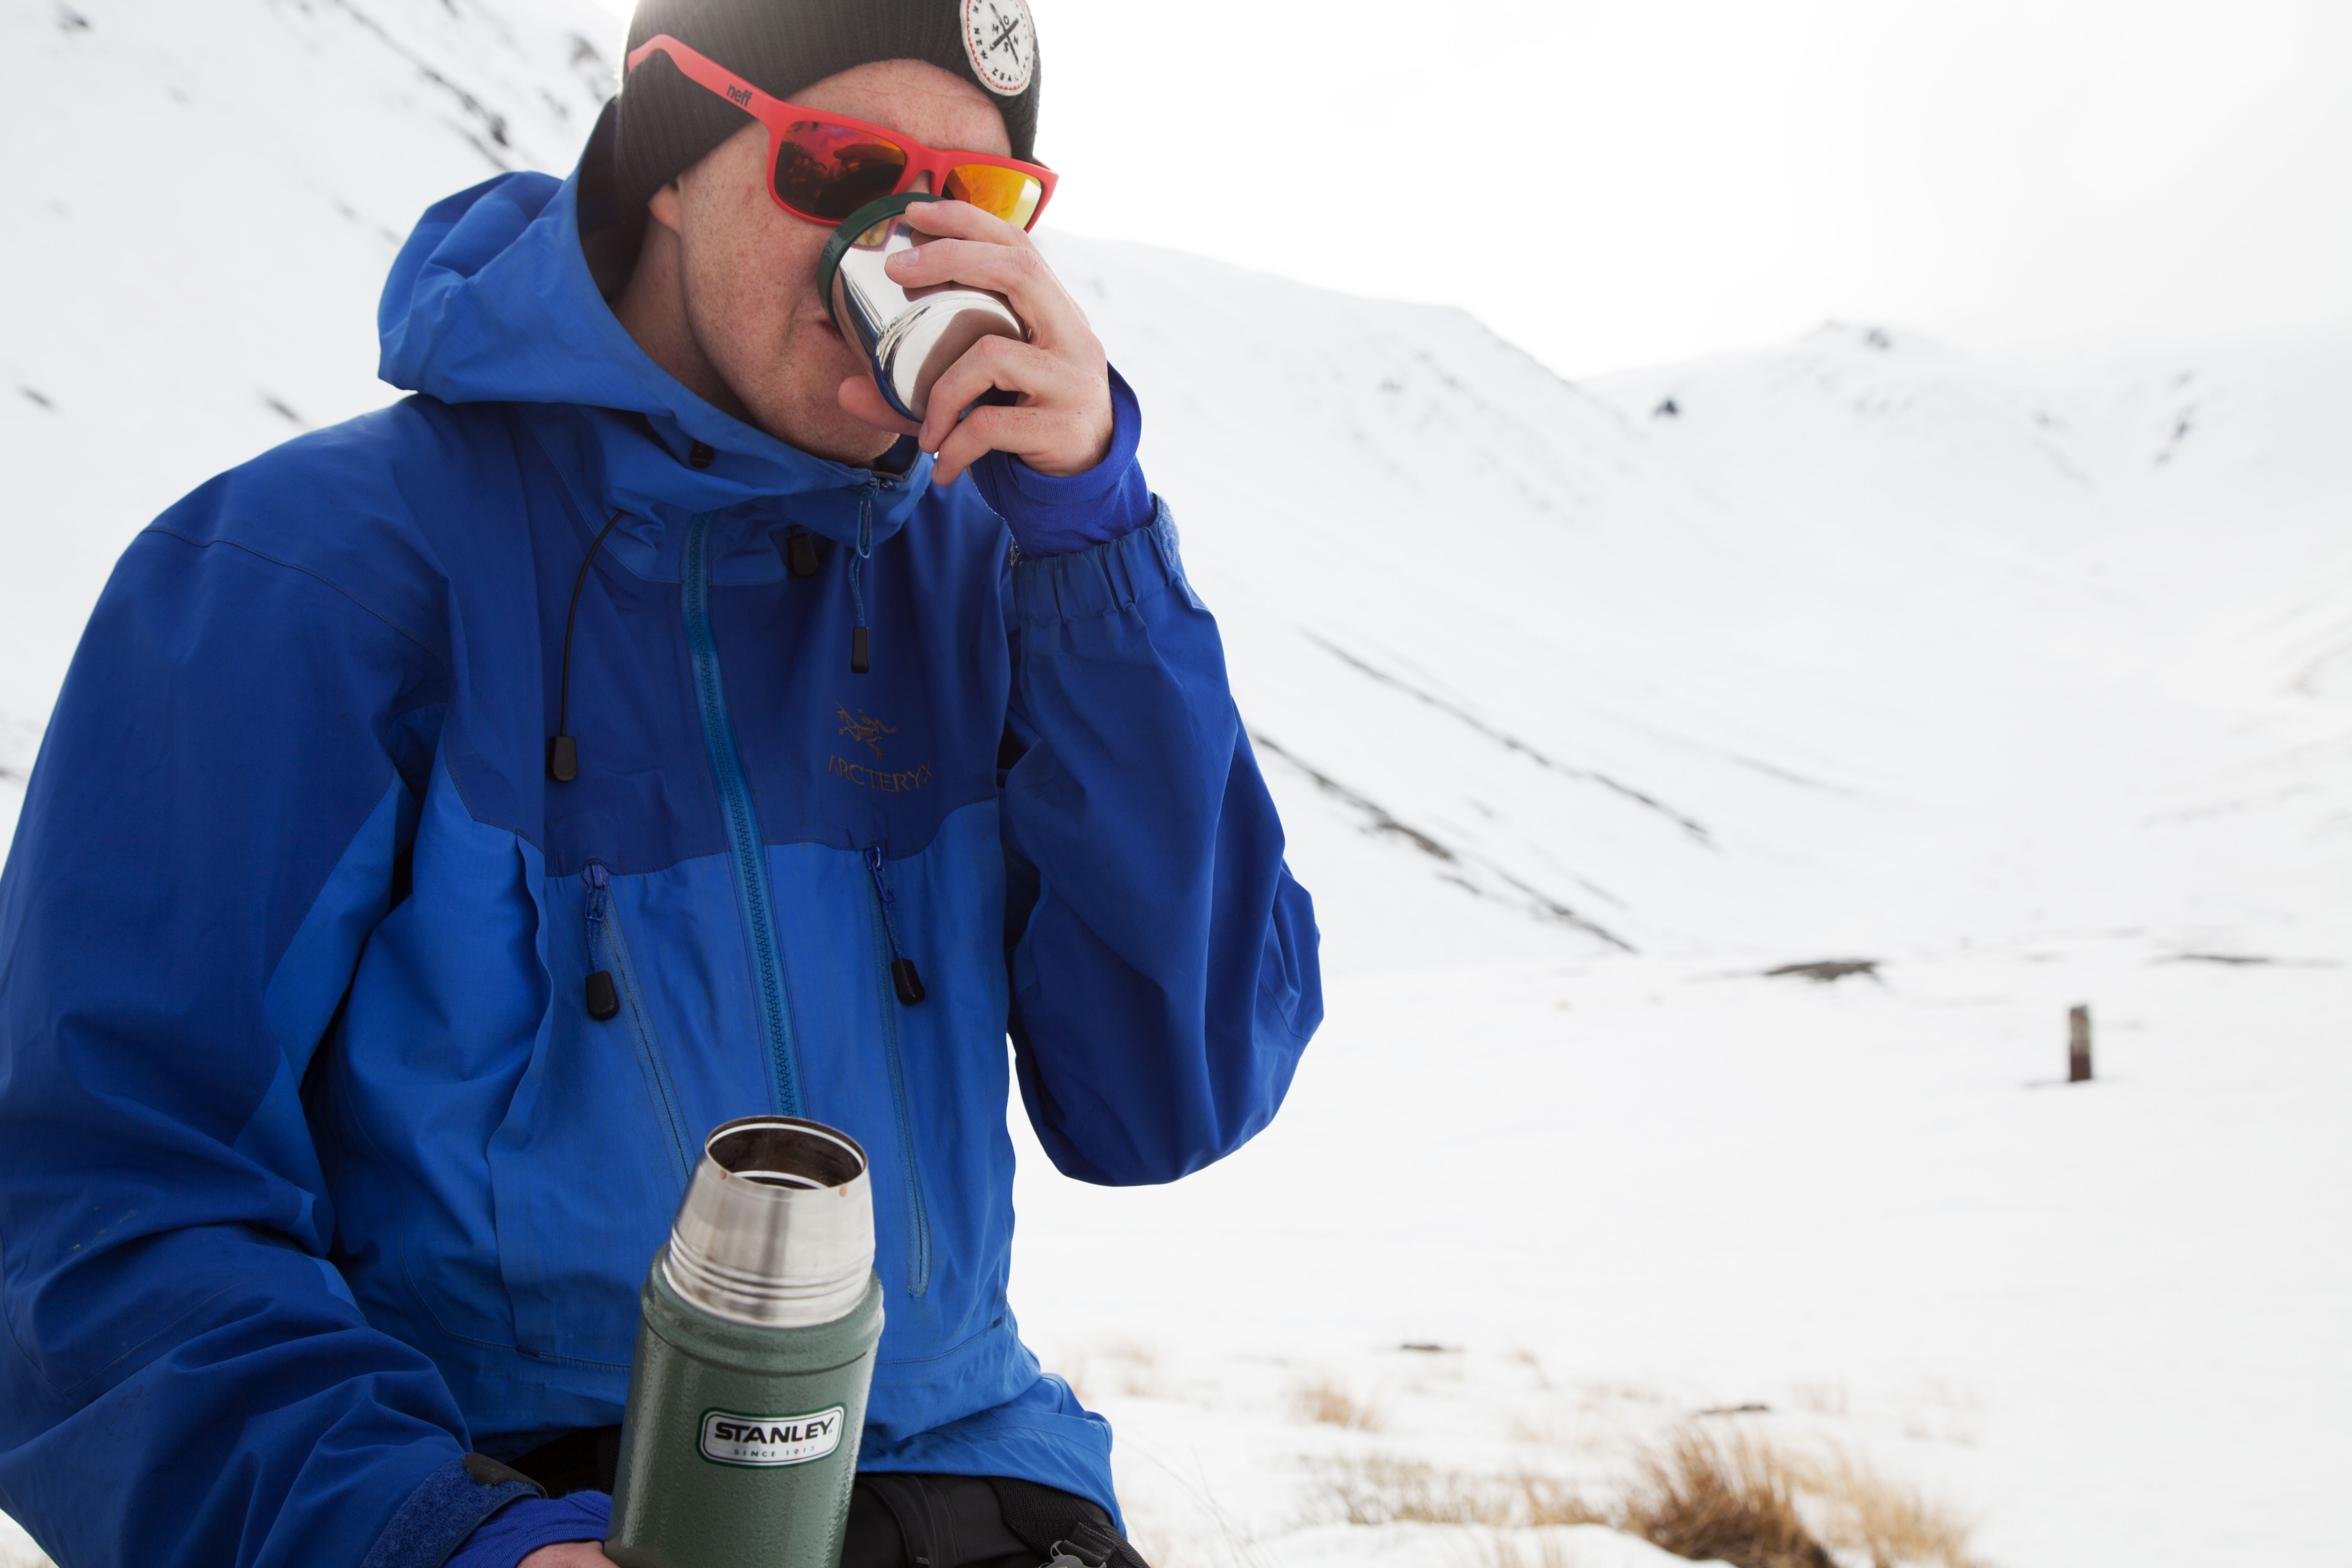 8. Elliot enjoying a cuppa before the walk back to the road